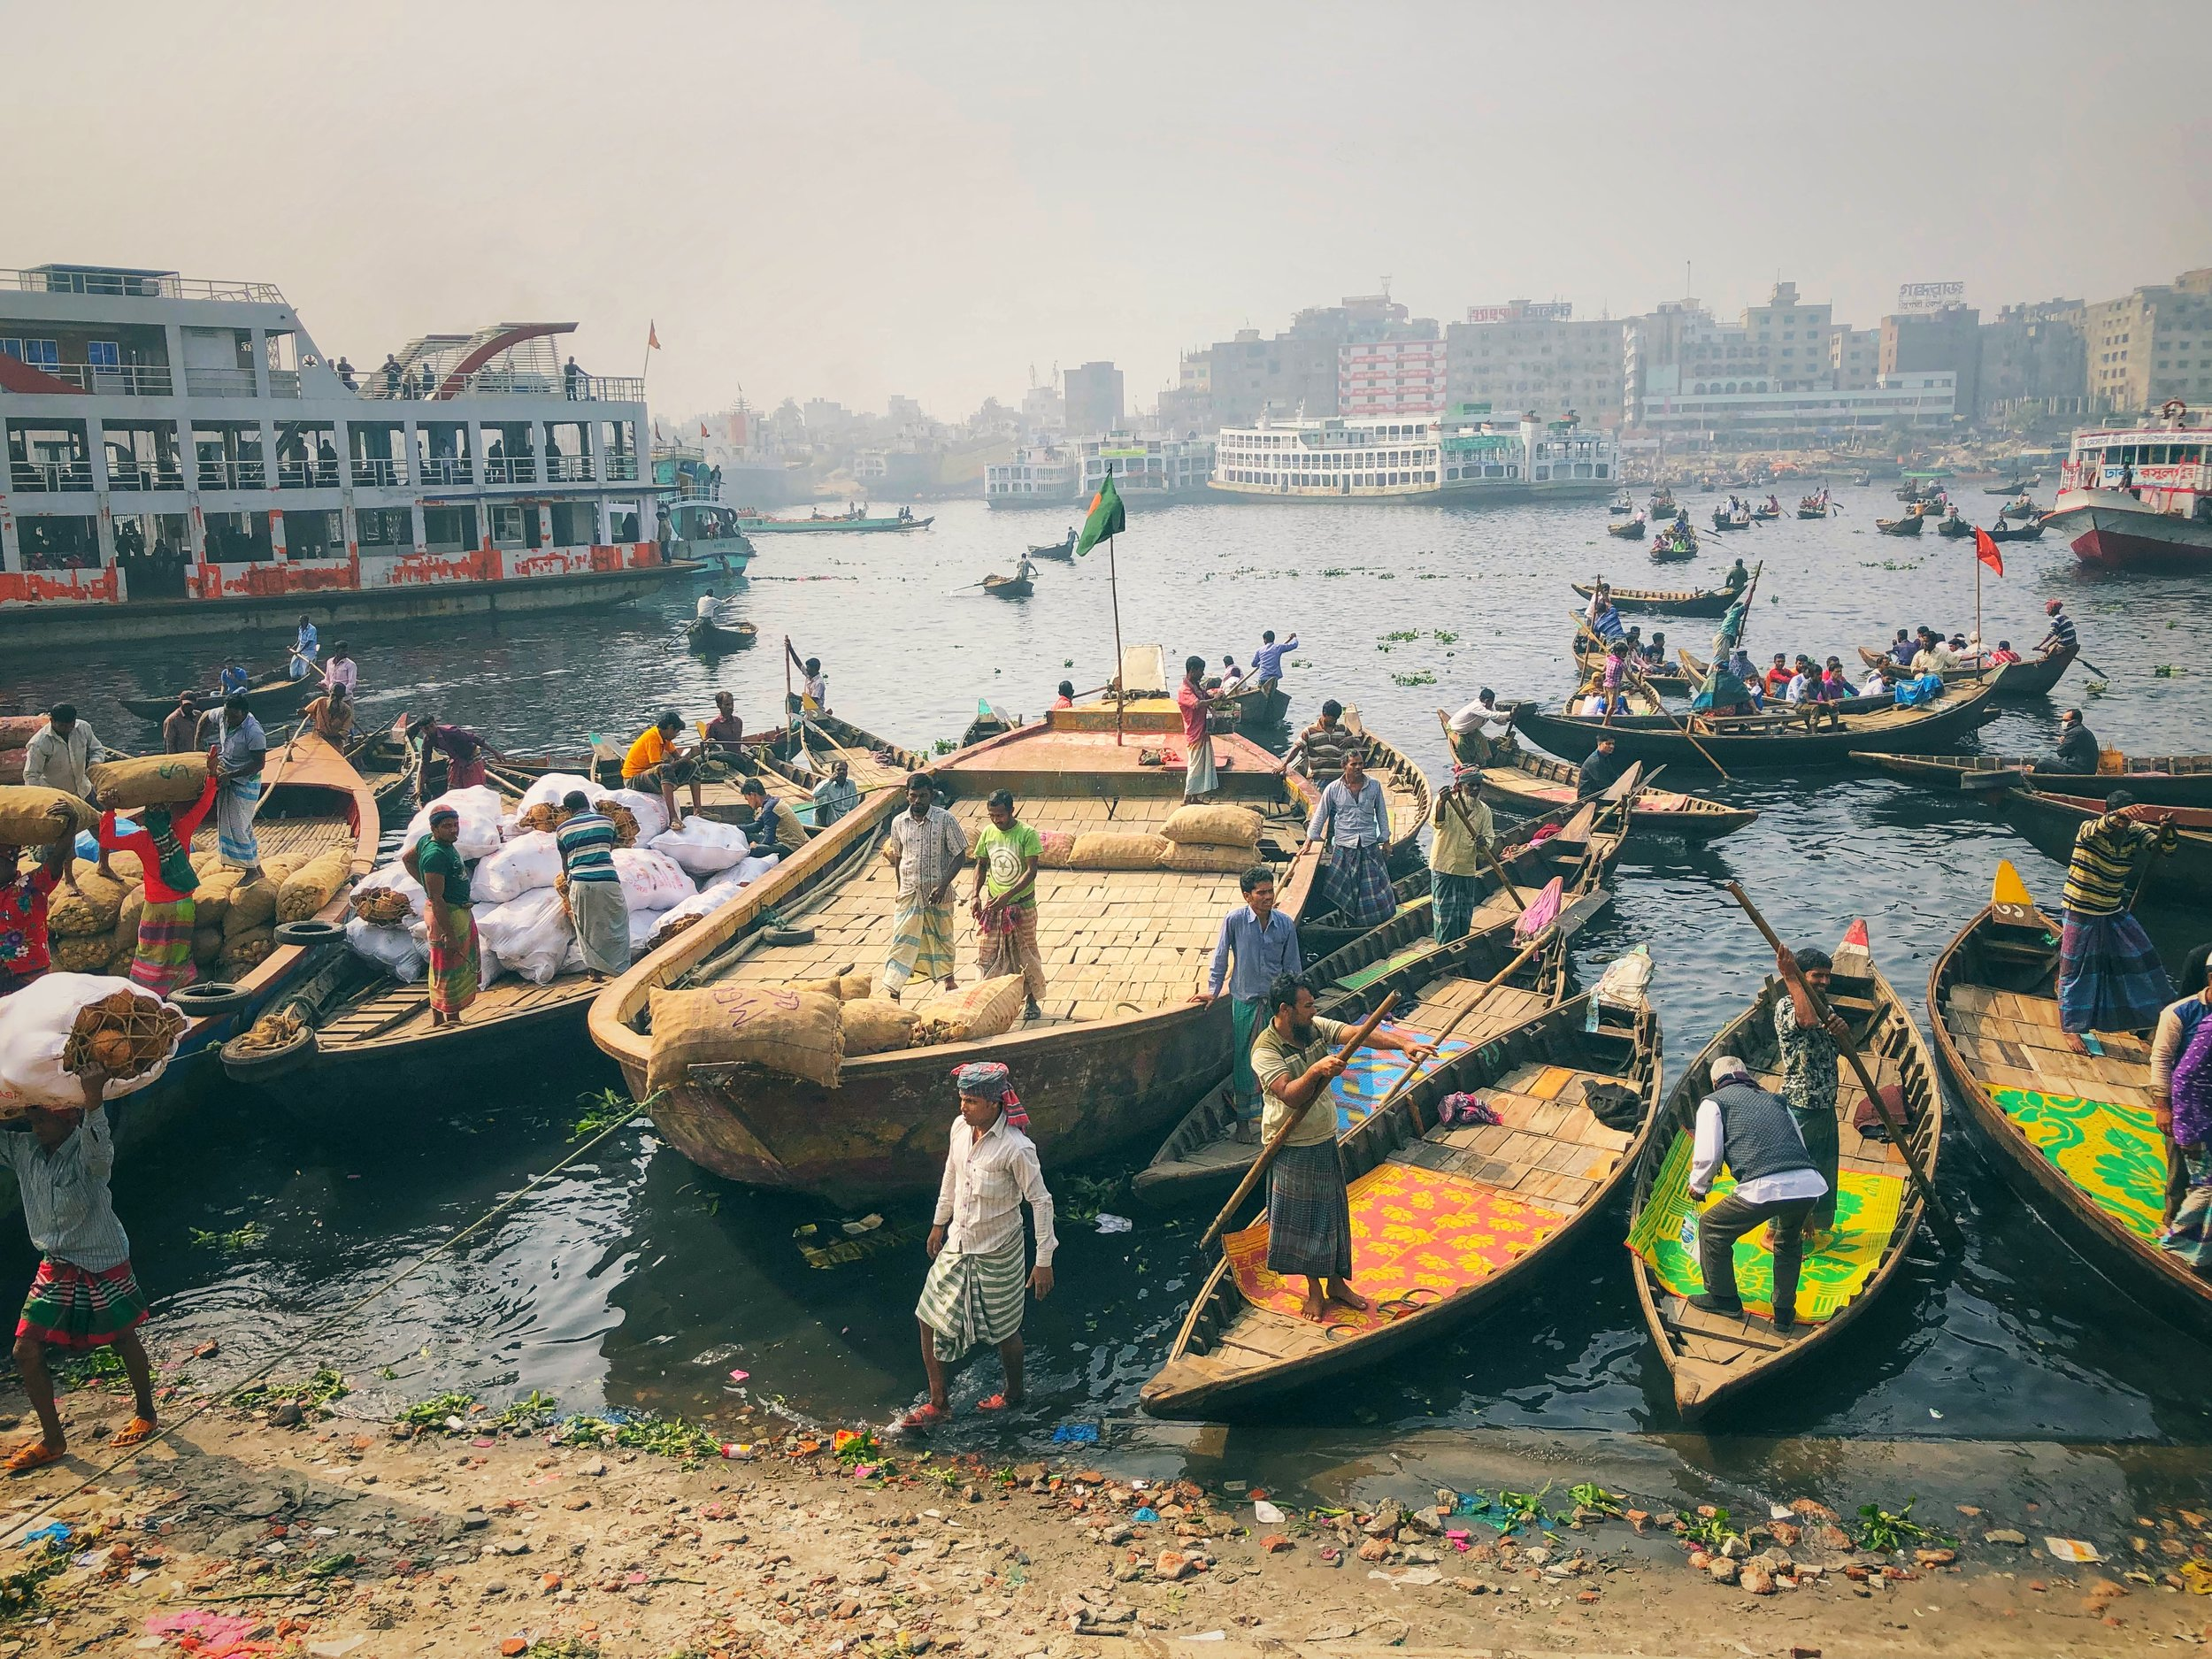 An astonishing, almost biblical scene on the banks of the Old Ganges, Dhaka. The sheer volume of boats was a sight to behold. The stench of fabric dye and the inky blue waters are caused by uncontrolled dumping of waste from garment factories that line the river's shores.